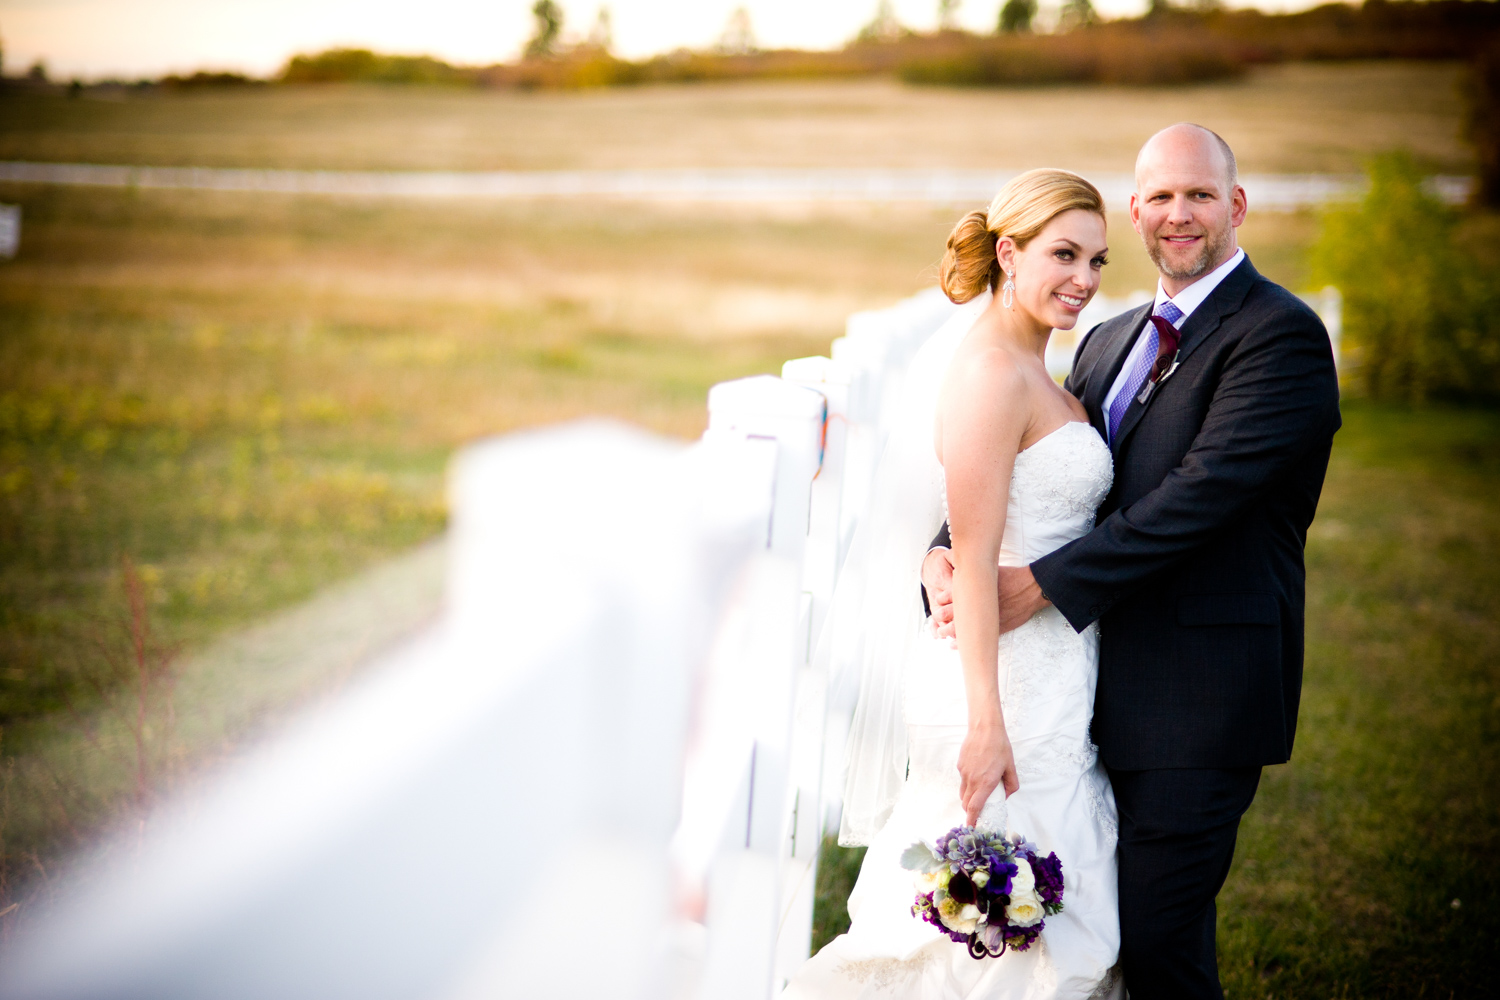 Crooked_Willow_Farms__Sedalia_Wedding_038.JPG